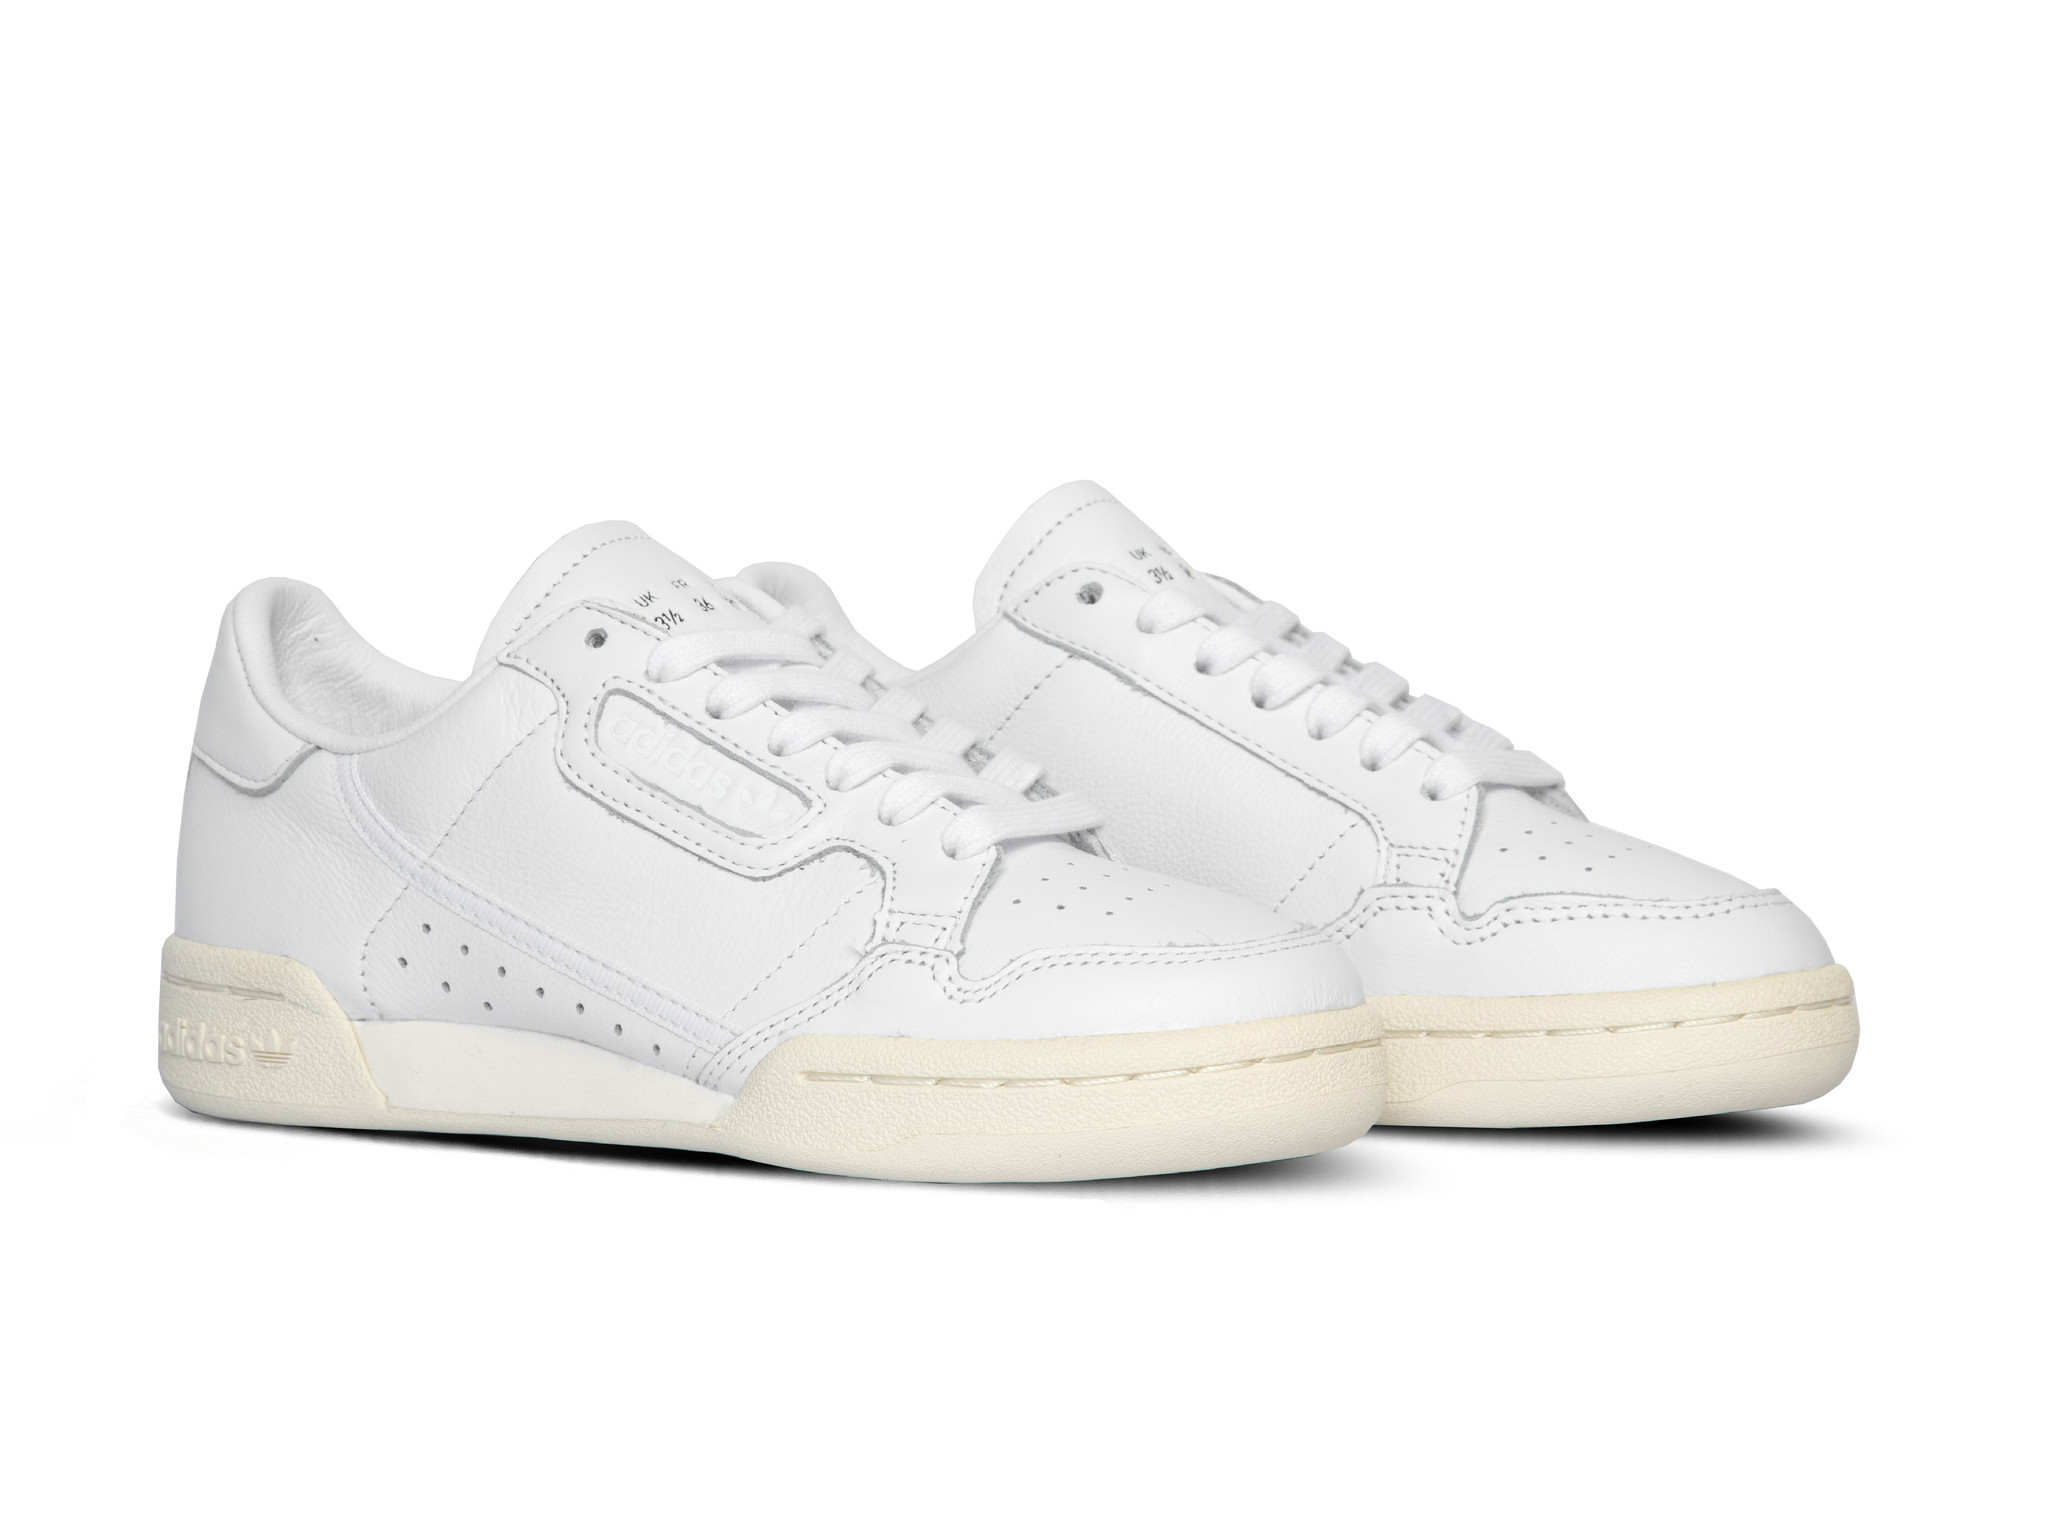 Adidas Continental 80 Footwear White Footwear White Off White EE6329